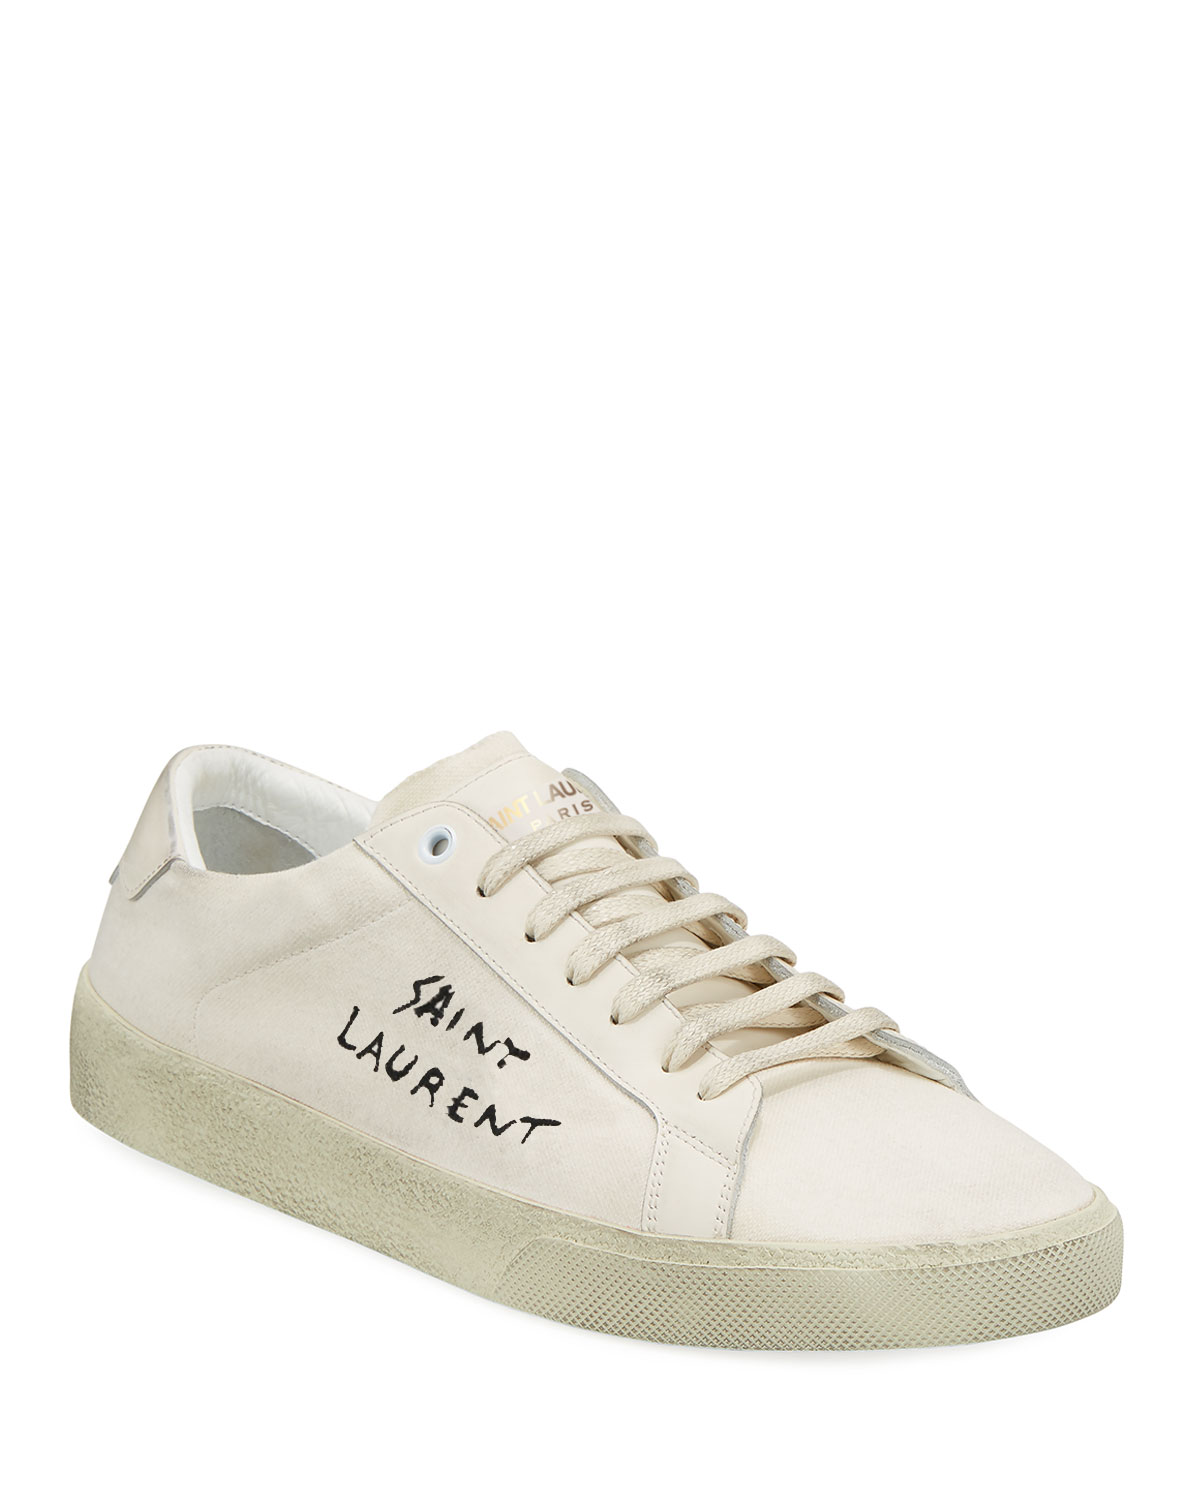 b9b22fbc6ea9 Saint Laurent Men s Canvas Low-Top Sneakers